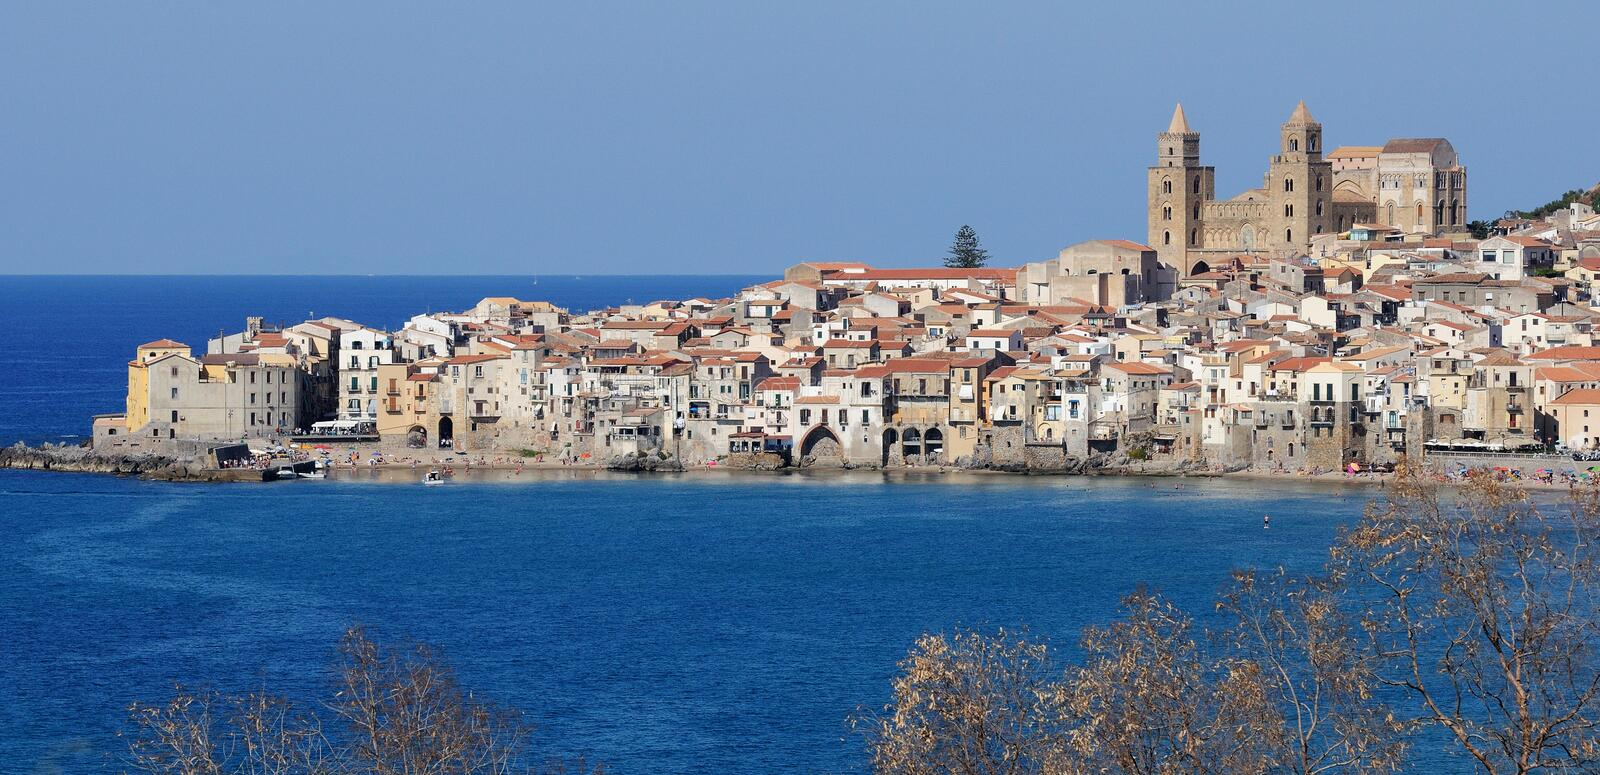 View of Cefalu, Northern Sicily. Panorama of the town of Cefalu on the Northern coast of Sicily stock image